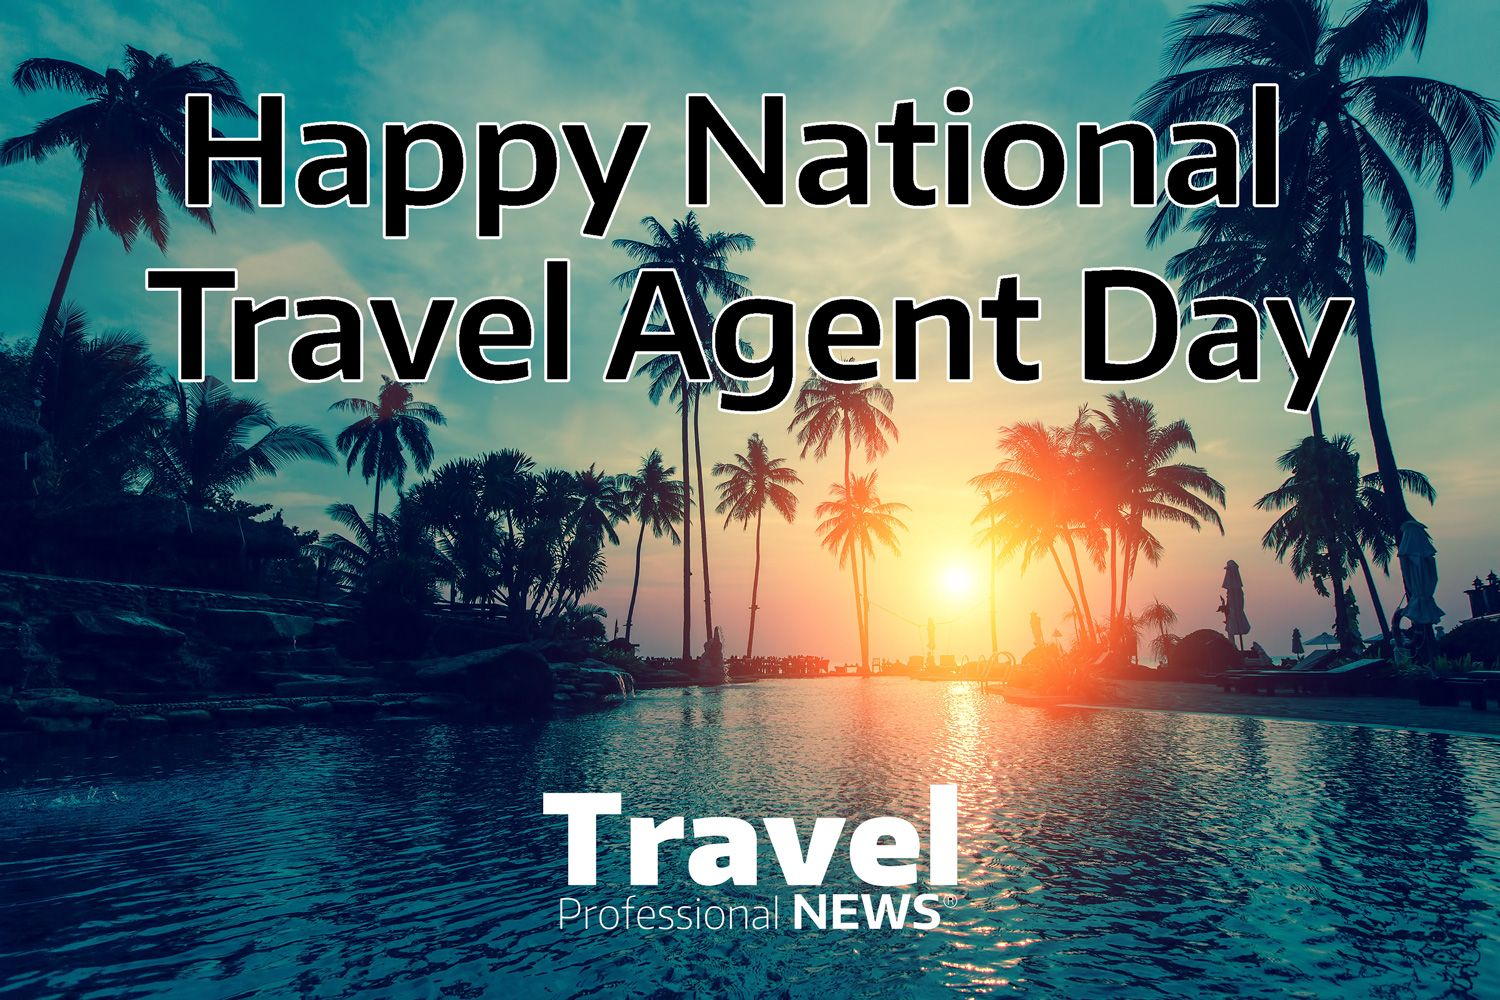 Happy National Travel Agent Day – Travel Professional NEWS